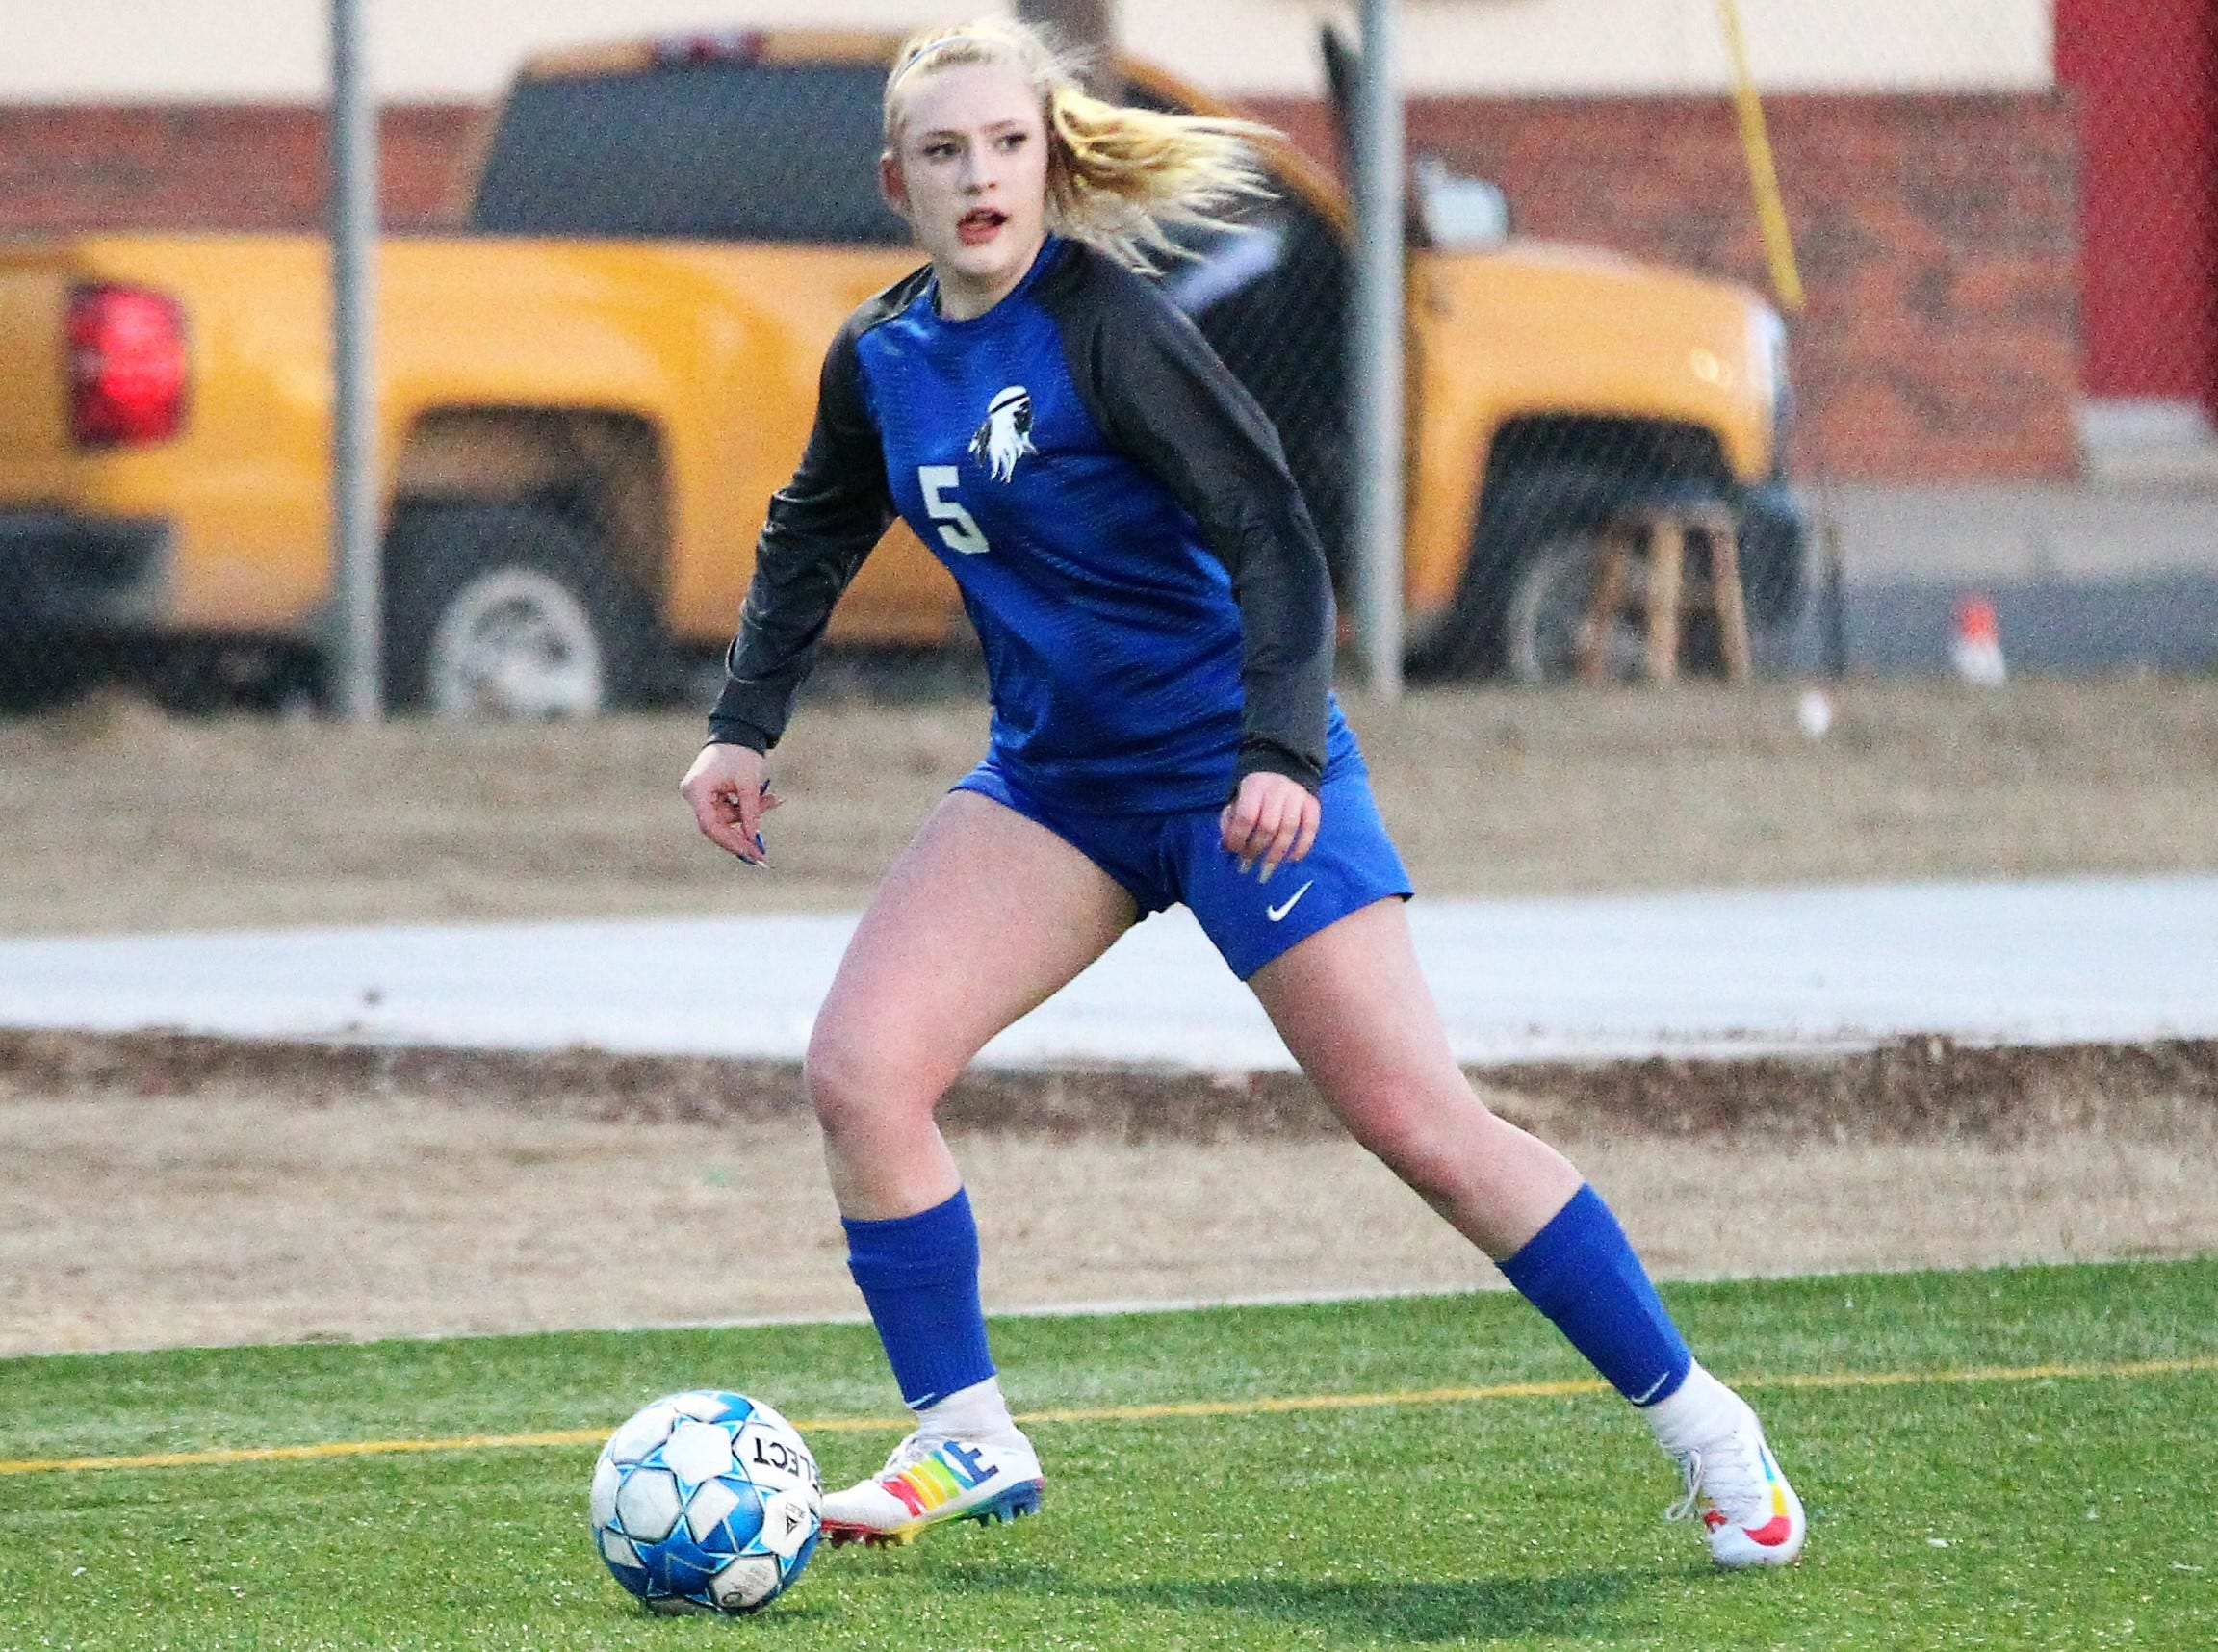 Lake View's Bryce Crabtree looks for a teammate to pass to in a District 4-4A soccer match against Snyder at Old Bobcat Stadium on Tuesday, March 5, 2019.